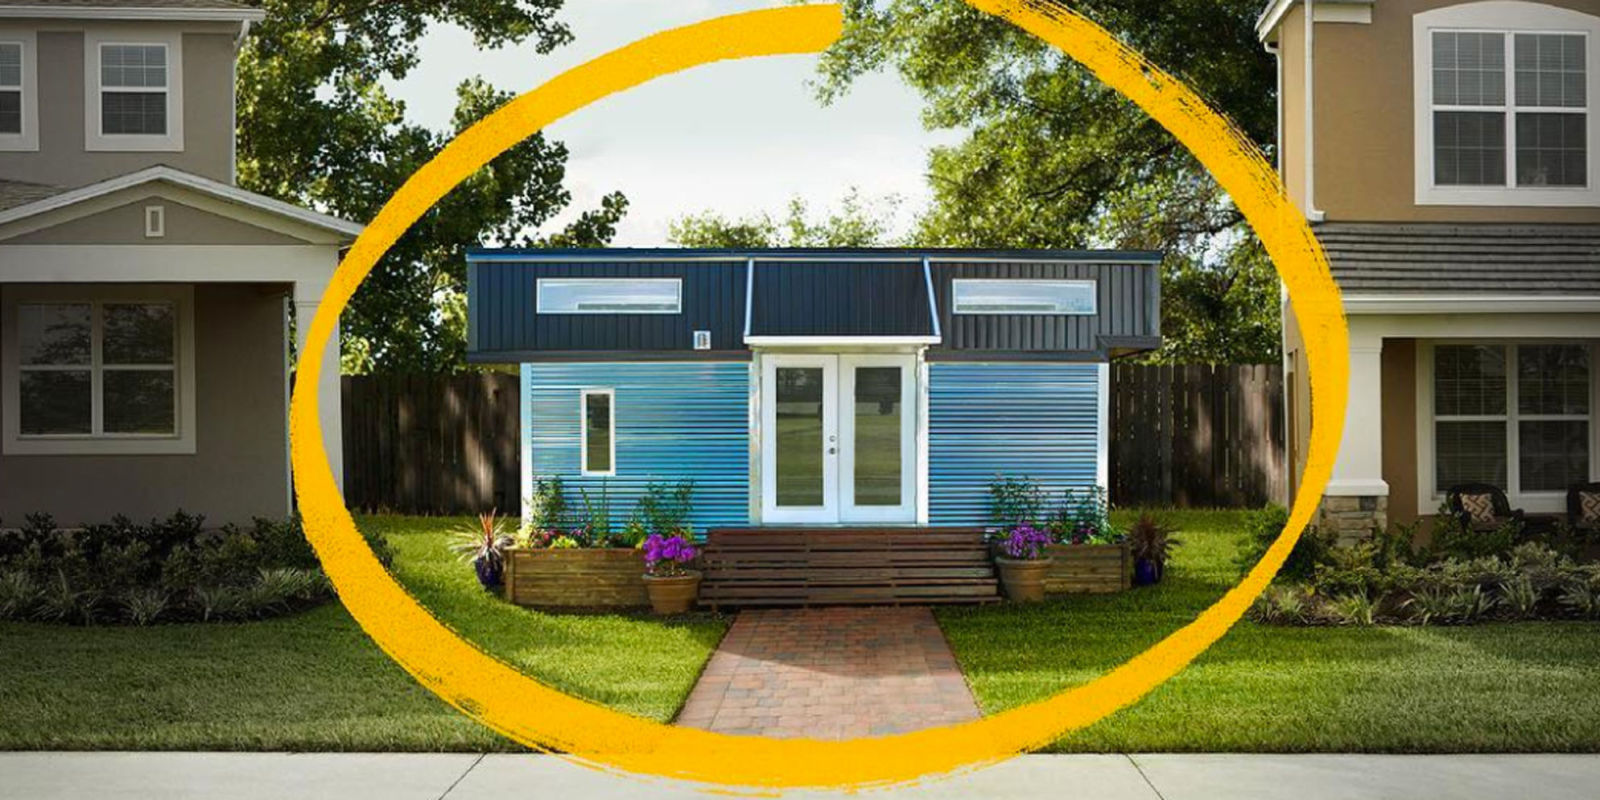 hgtv will add two new u0027house spinoffs to their lineup house hunters family and tiny paradise - House Hunters Renovation Casting